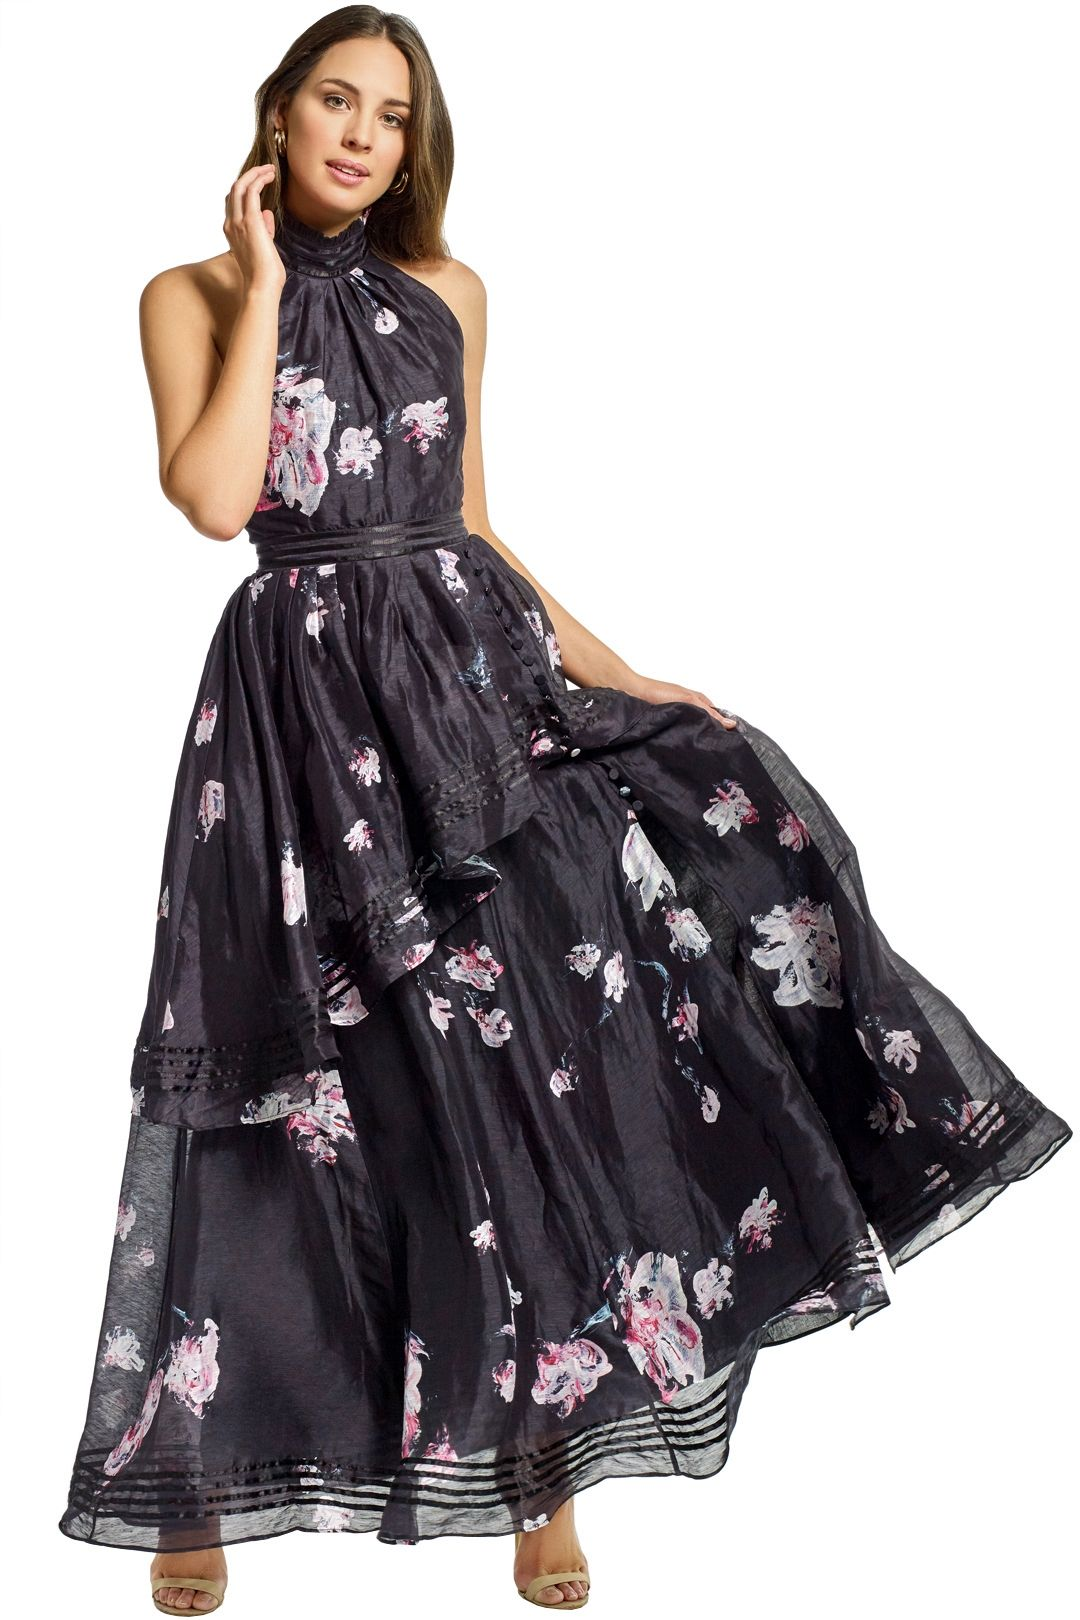 Aje - Sienna Dress - Black Floral - Front